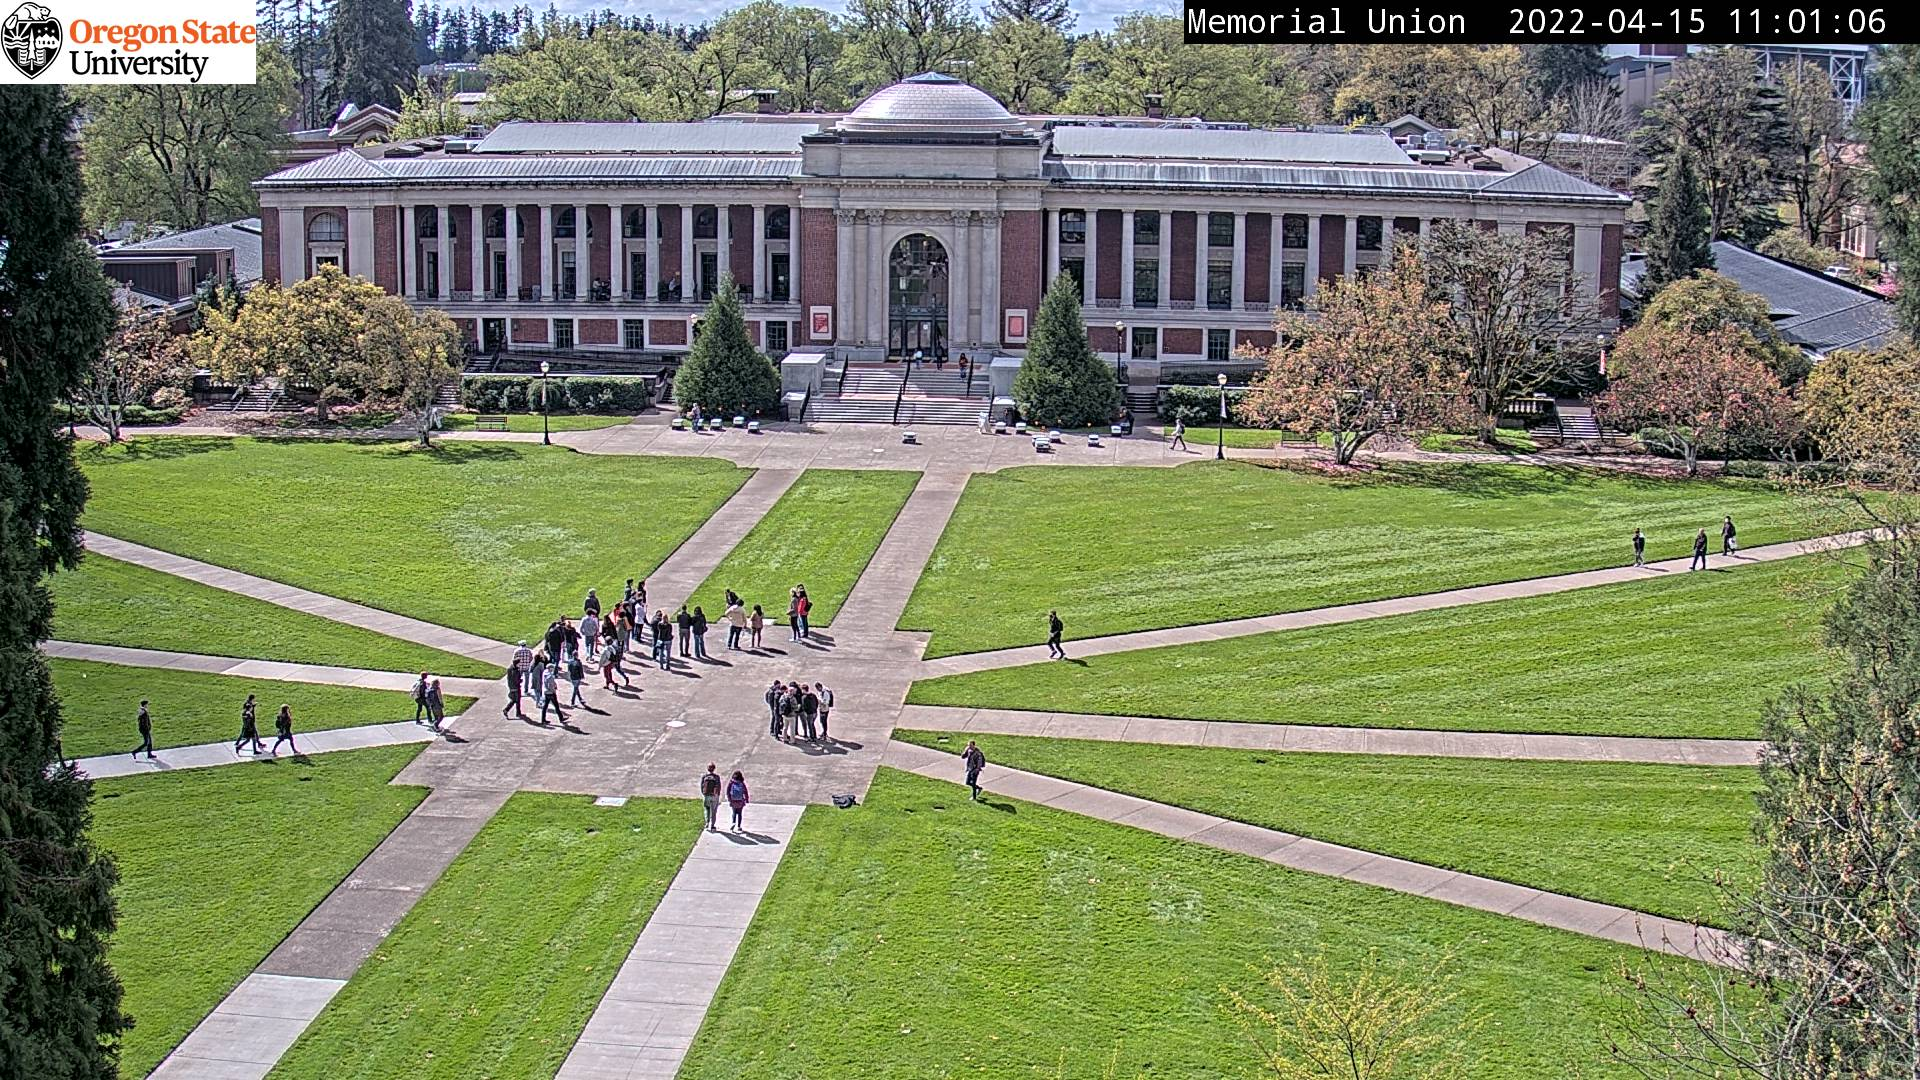 Picture of Oregon State University's Memorial Union Quad updated every minute